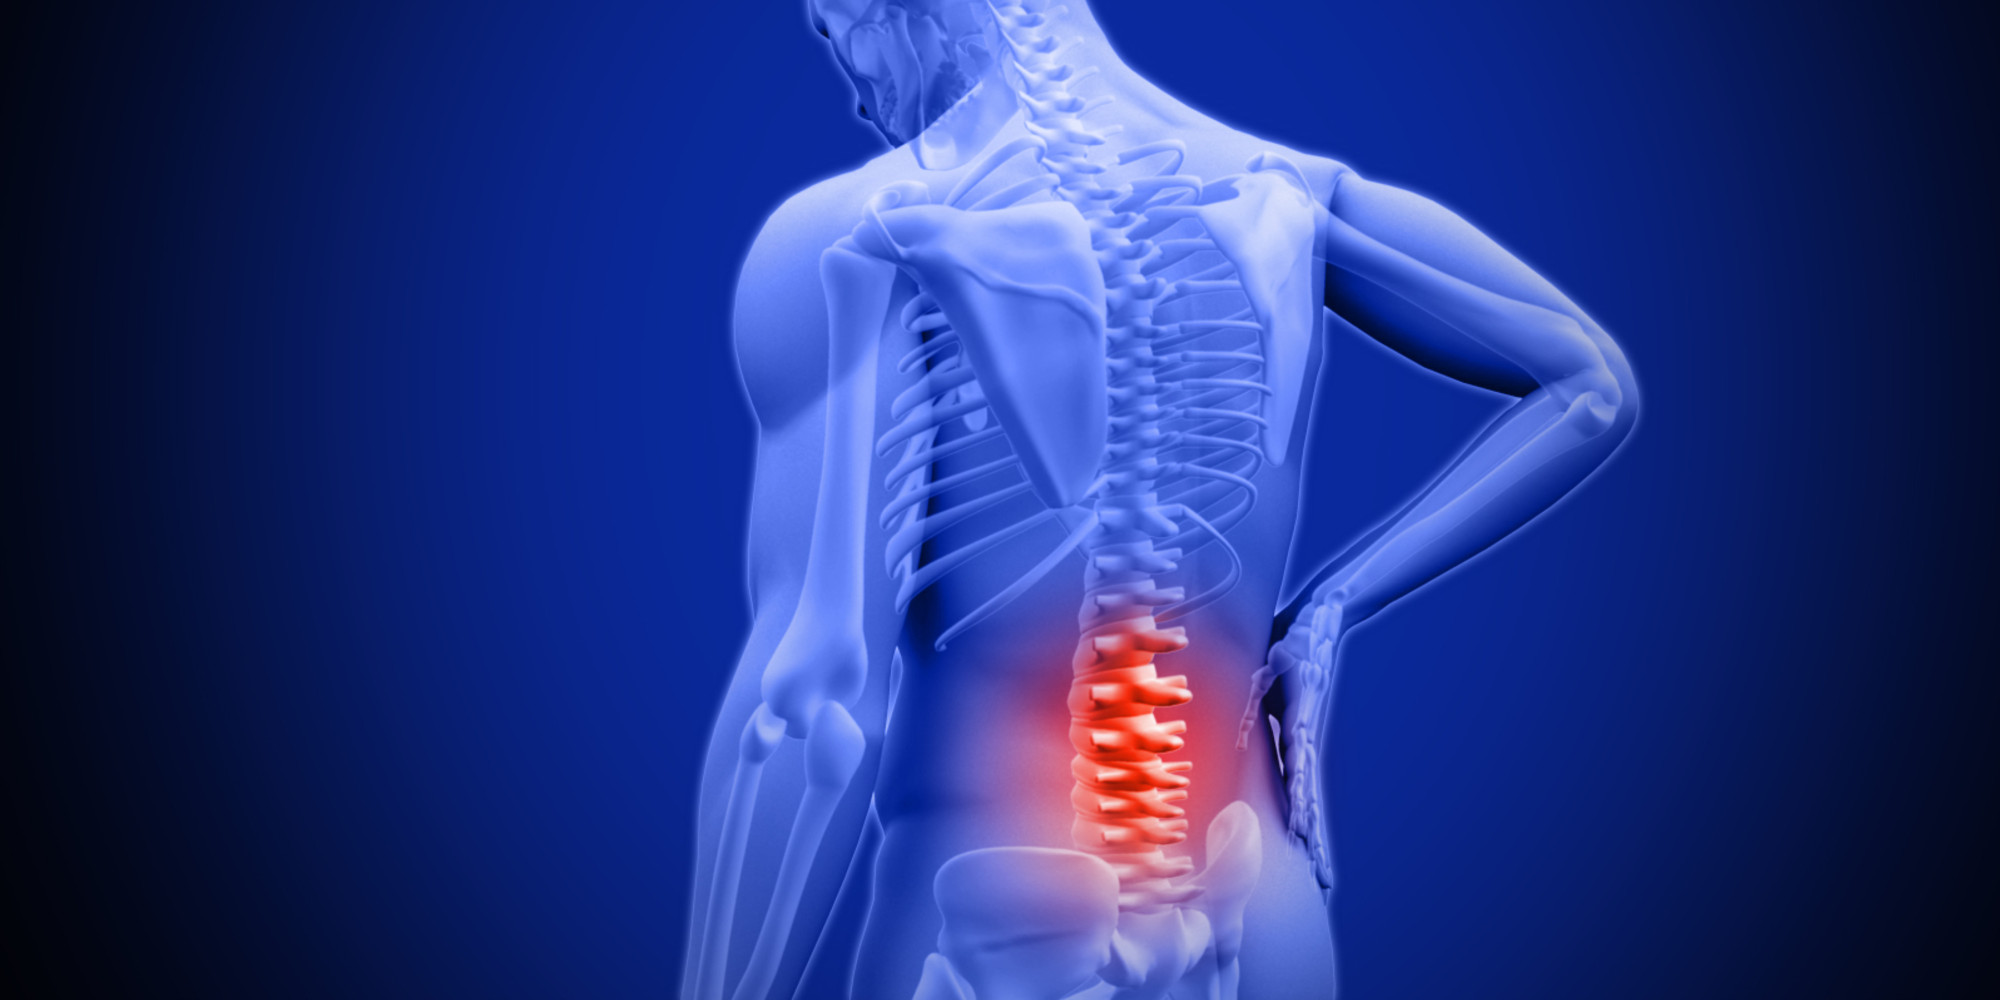 Lower Back Pain   Low back pain is caused by injury to a muscle (strain) or ligament (sprain). Common causes include improper lifting, poor posture, lack of regular exercise, fracture, ruptured disk, or arthritis.